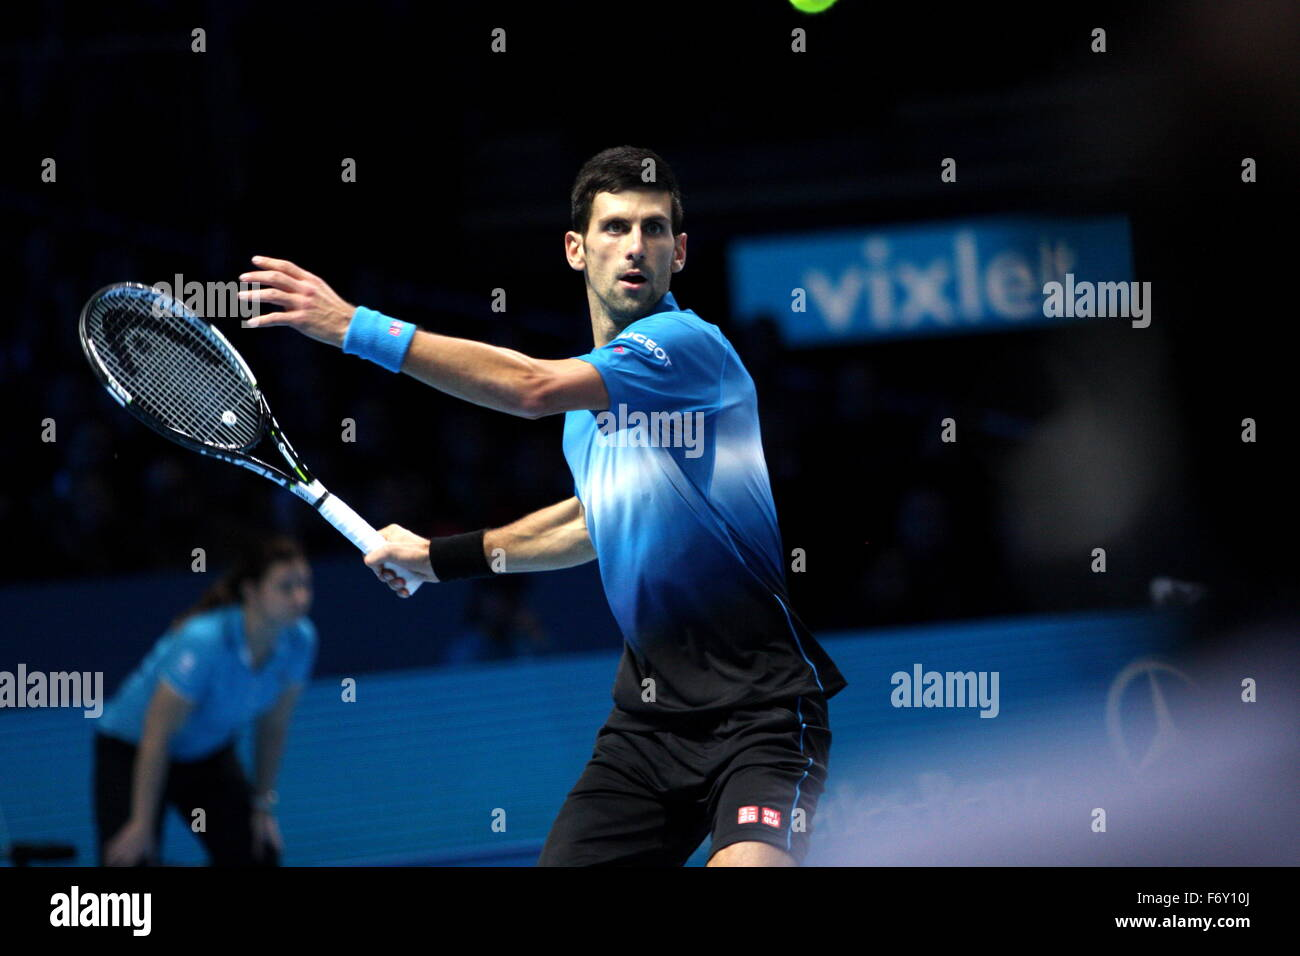 London, UK. 21st Nov, 2015. Barclays ATP World Tour Finals, Novak Djokovic (SRB) on his way to win against Rafael - Stock Image